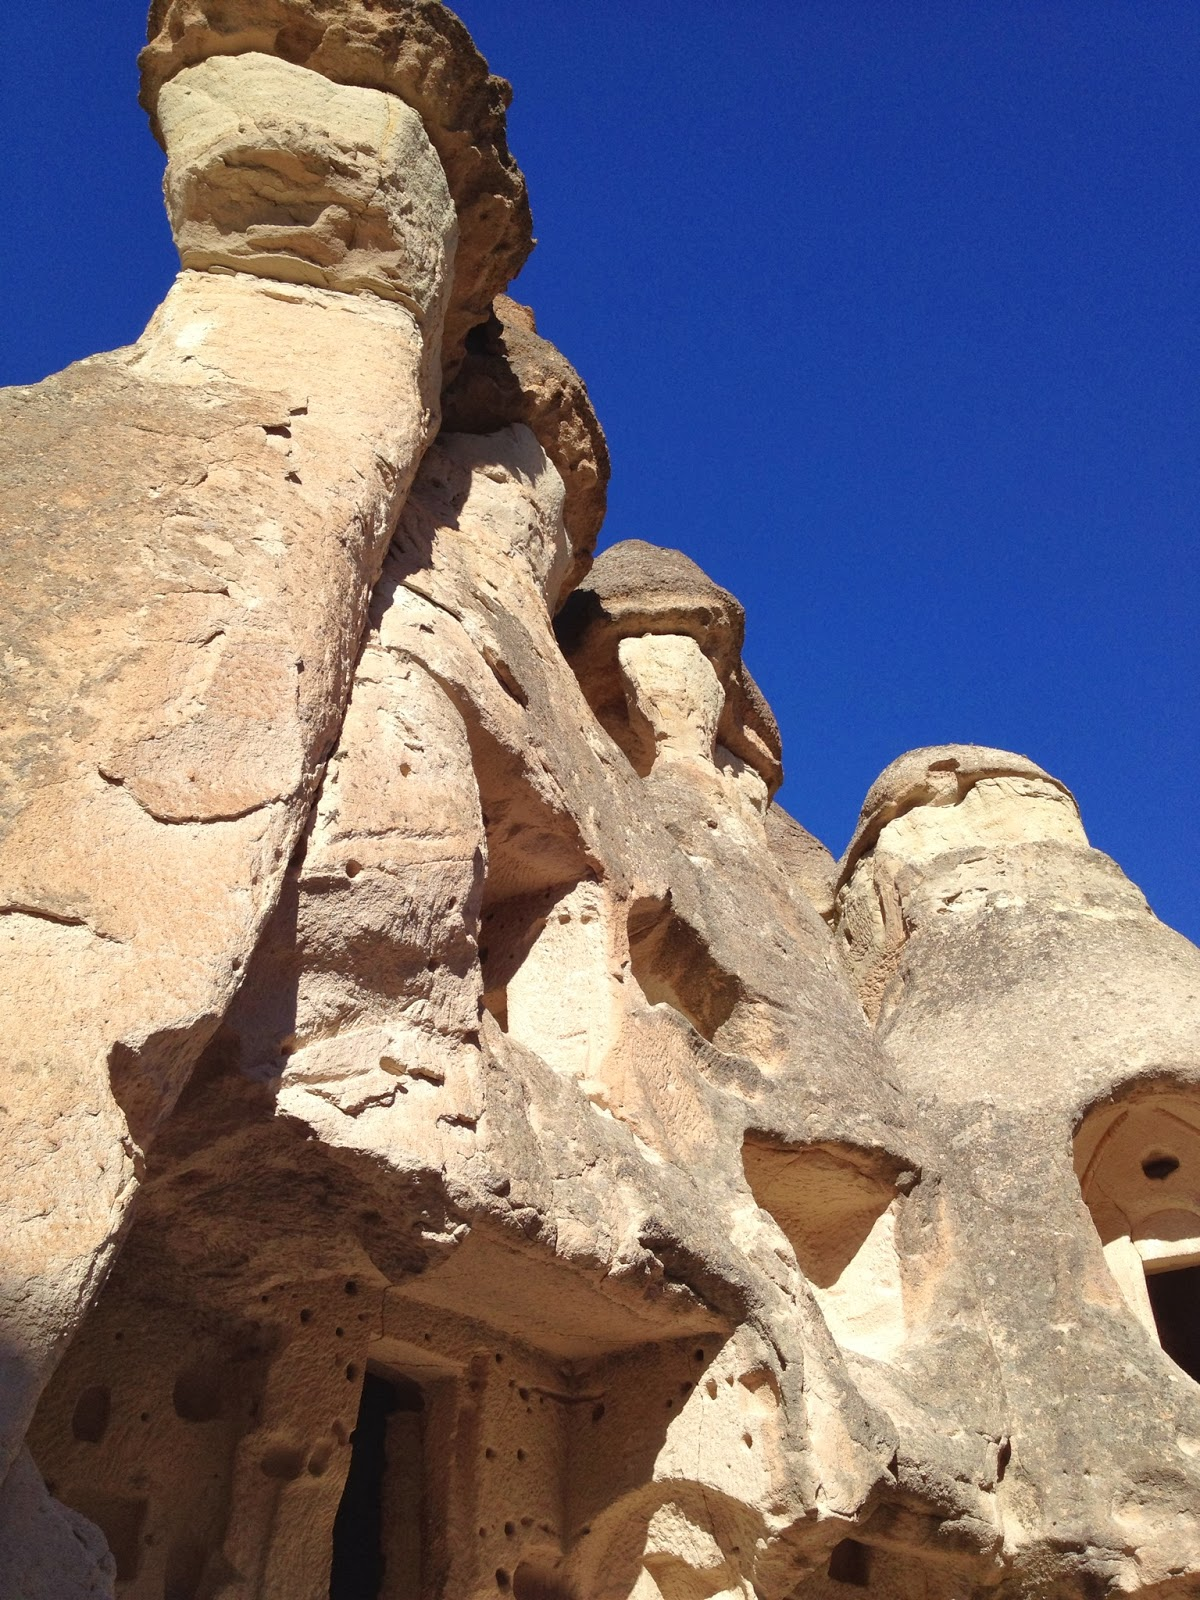 Cappadocia - We get to go inside homes made out of Fairy Chimneys rock formations